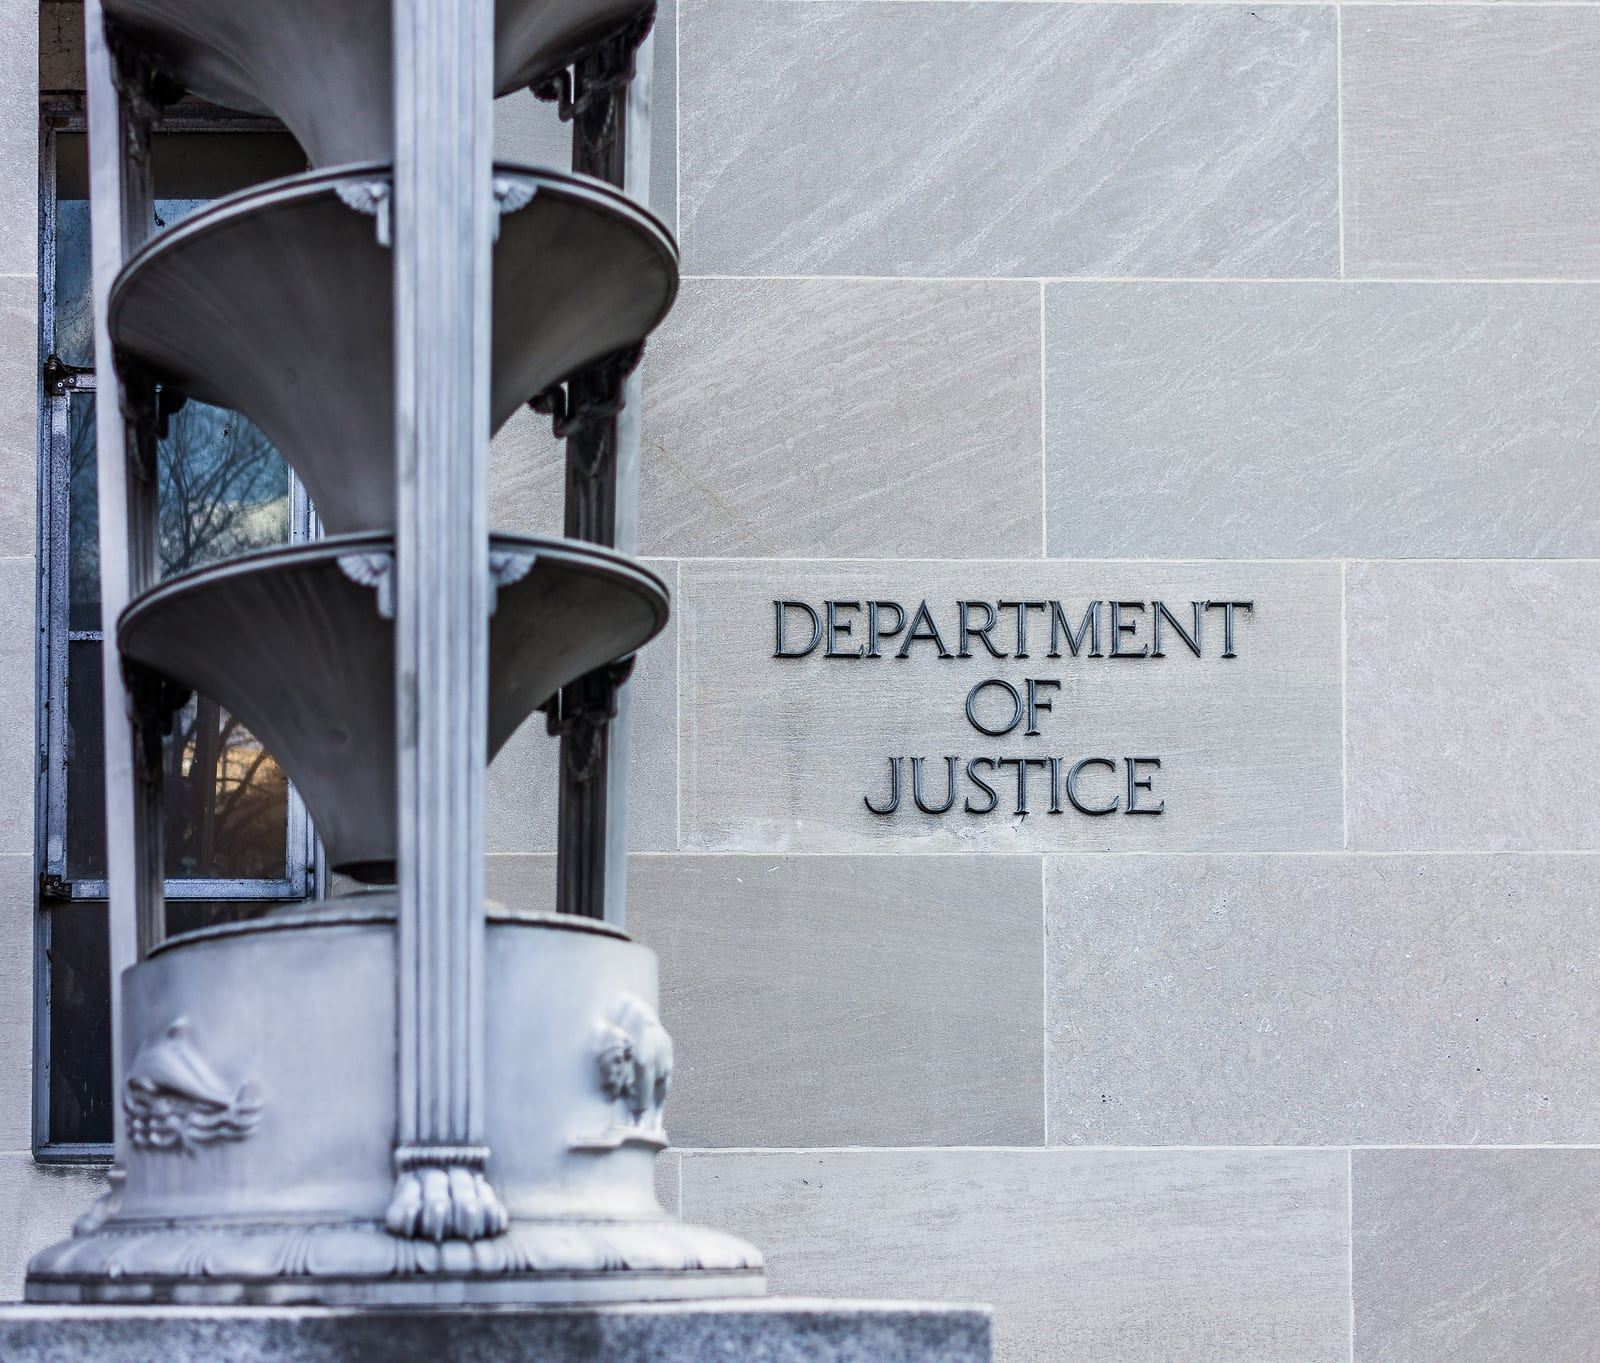 Pennsylvania News: Pittsburgh Man, Michael King Sentenced to 20 Months' Incarceration for Cocaine Conspiracy